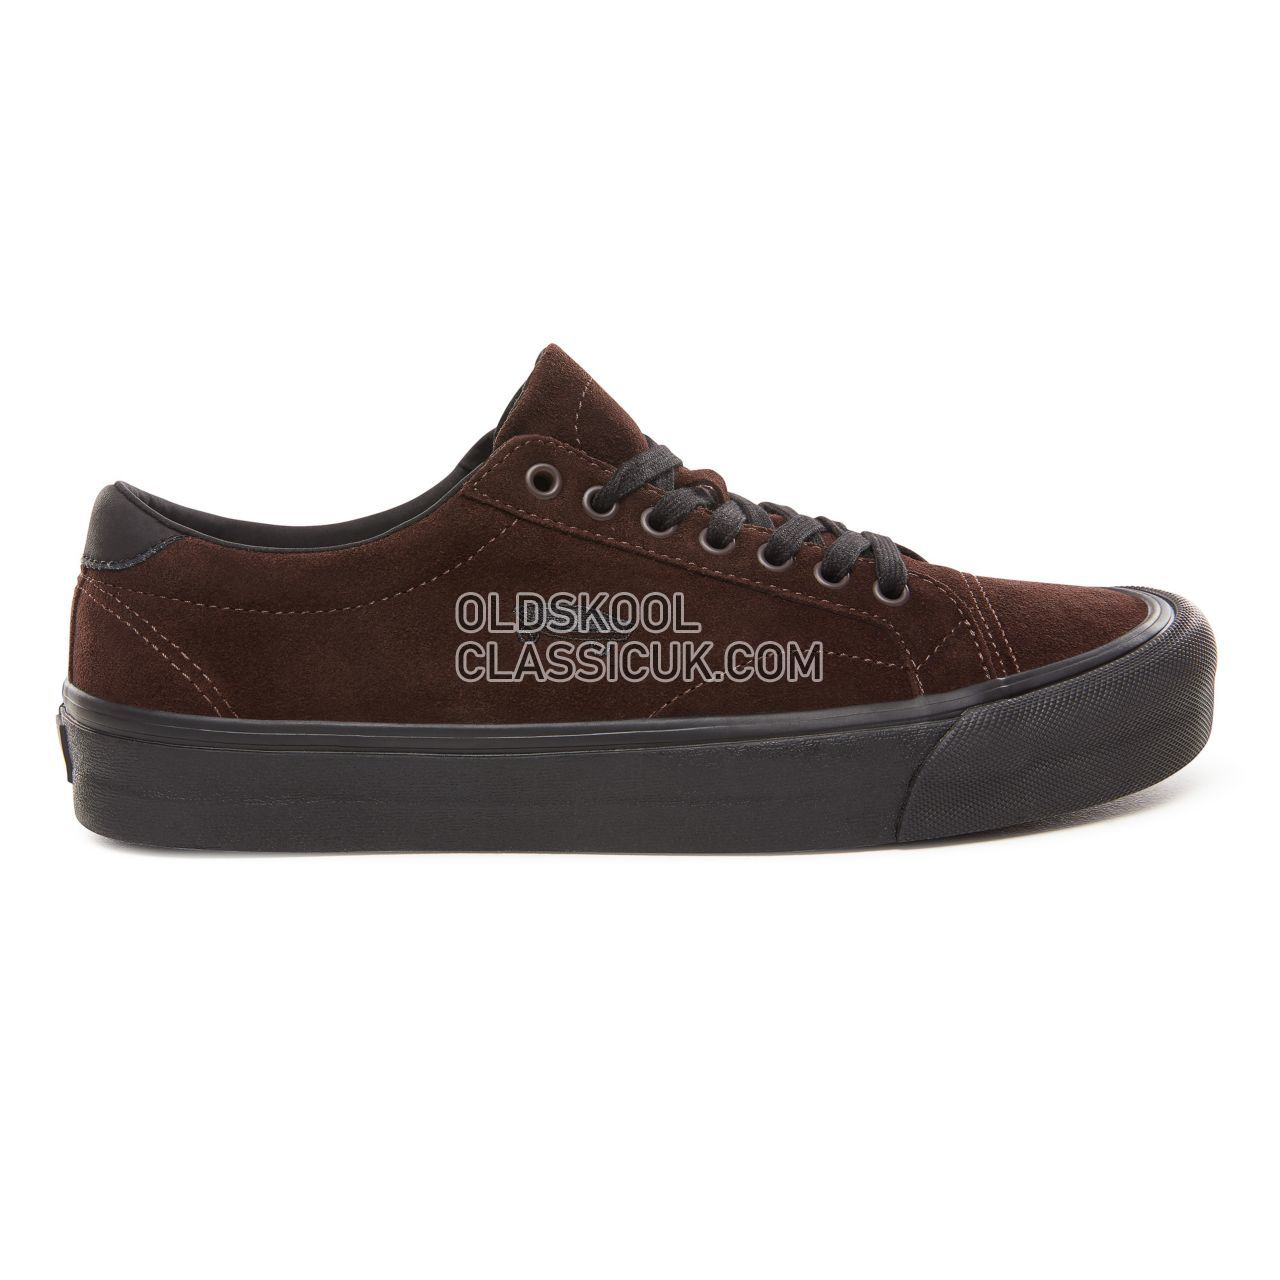 Vans Suede Court Icon Sneakers Mens (Suede) Demitasse/Black VN0A3JF2UM8 Shoes